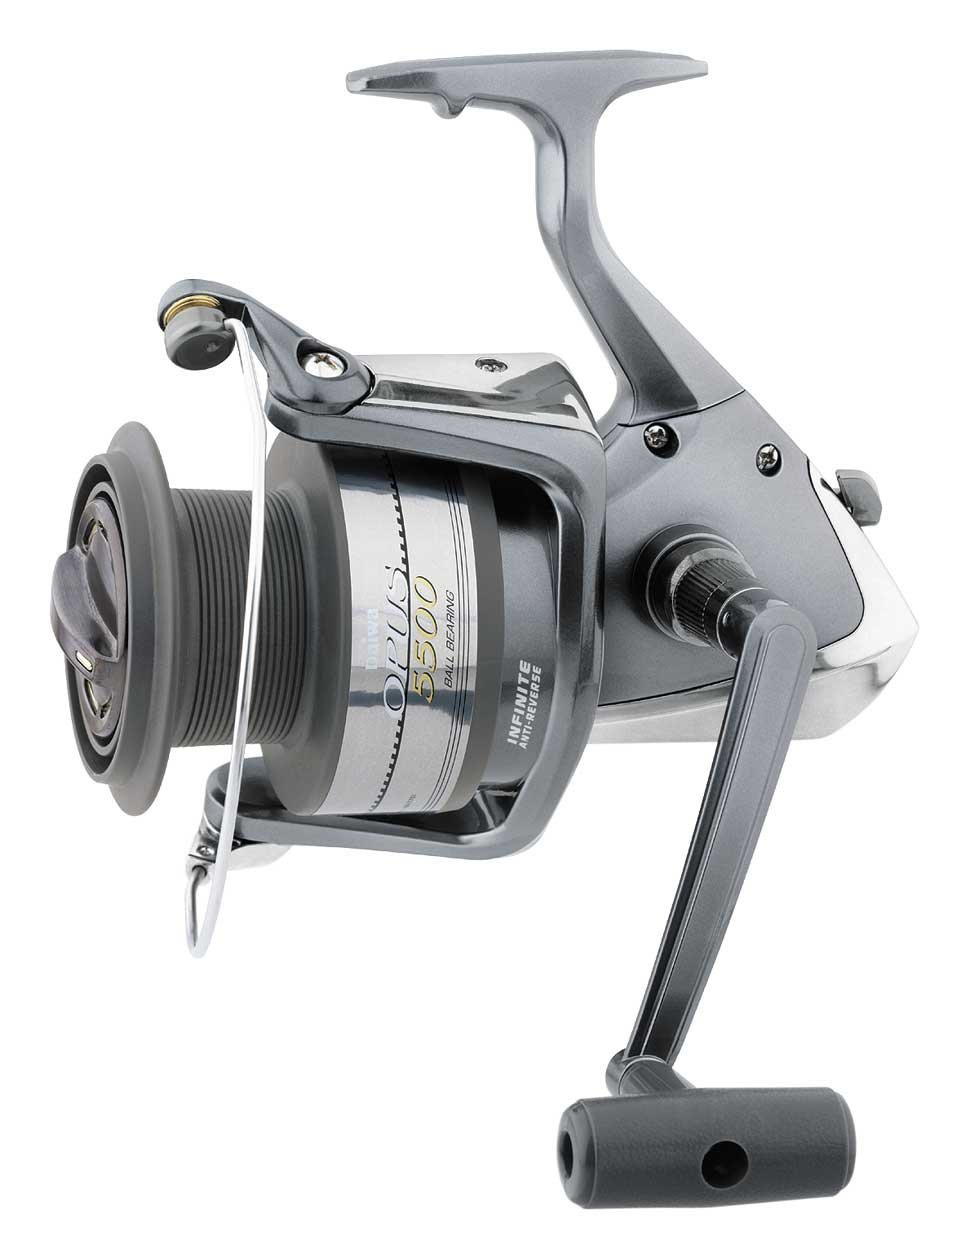 Top 10 Best Saltwater Spinning Reels for the Money